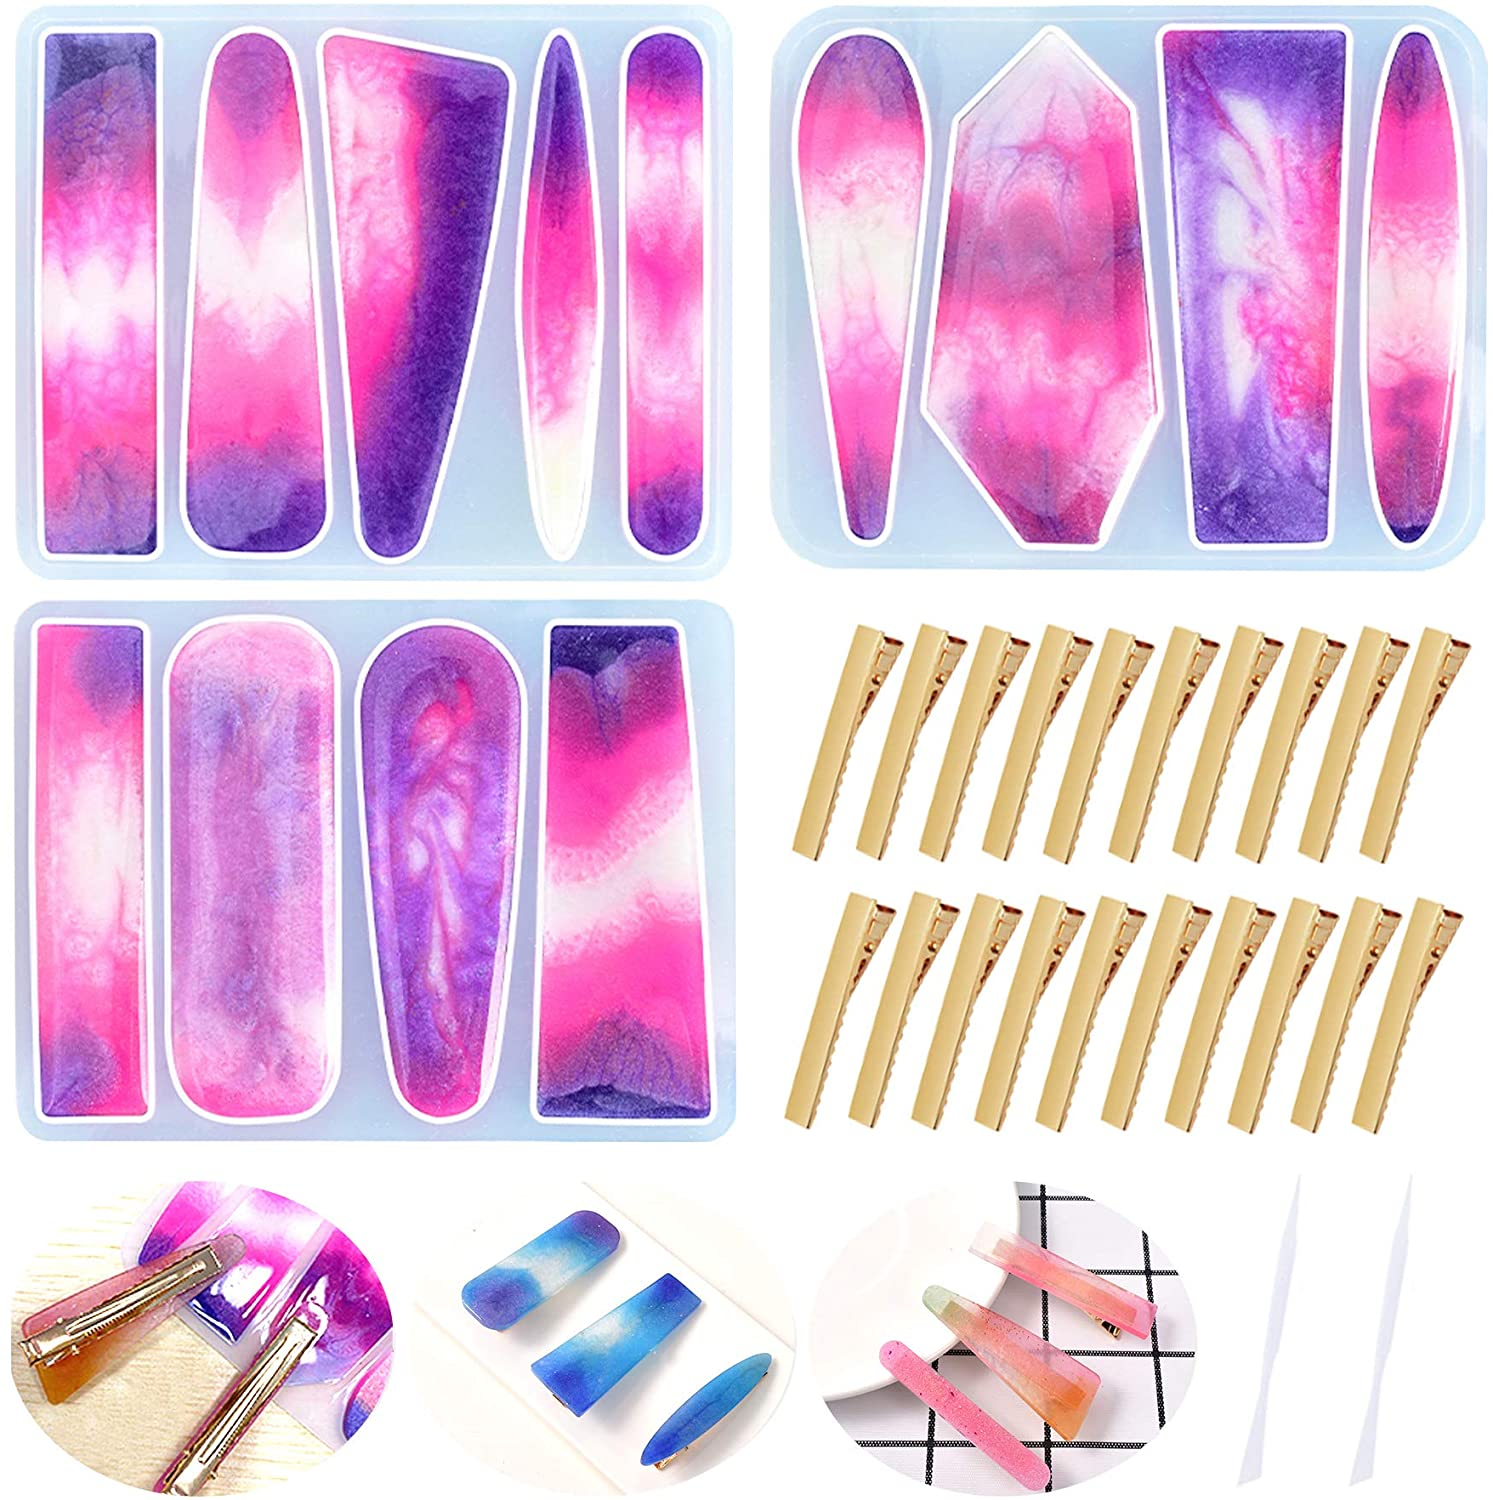 Hvinie Hair Clip Resin Mold 3 Pcs, Hairpin Jewelry Silicone Casting Molds with 20 Pcs Gold Metal Alligator Clips and 2 Pcs Stirring Rod for DIY Jewelry Keychain Craft Hand Making